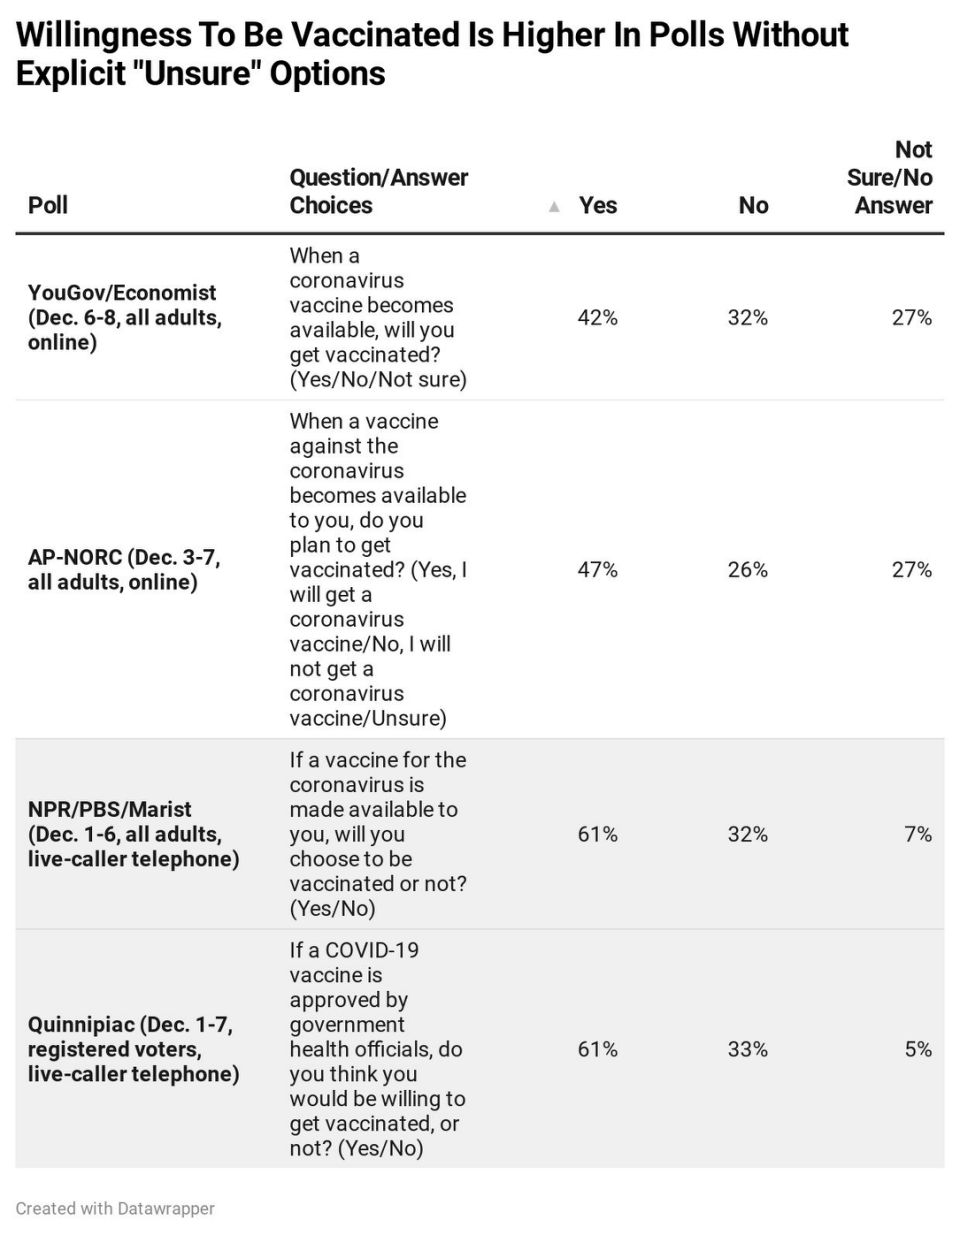 Will americans take a coronavirus vaccine? Here's what surveys can (and can't) tell US